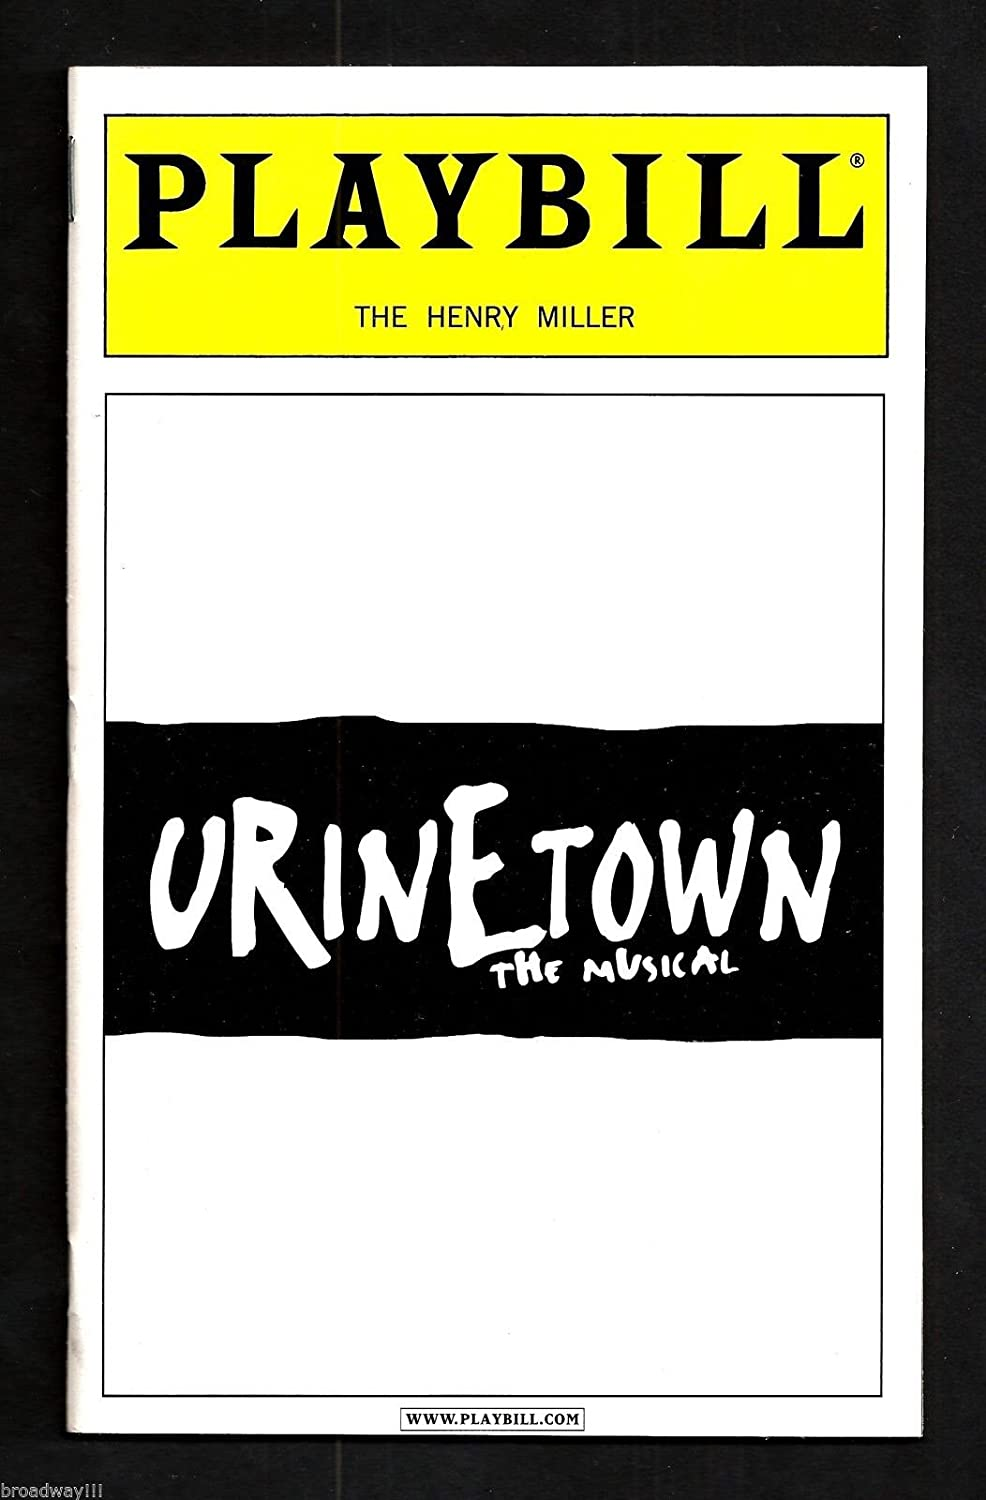 John Cullum 'URINETOWN' Jeff McCarthy / Spencer Kayden 2001 Broadway Playbill